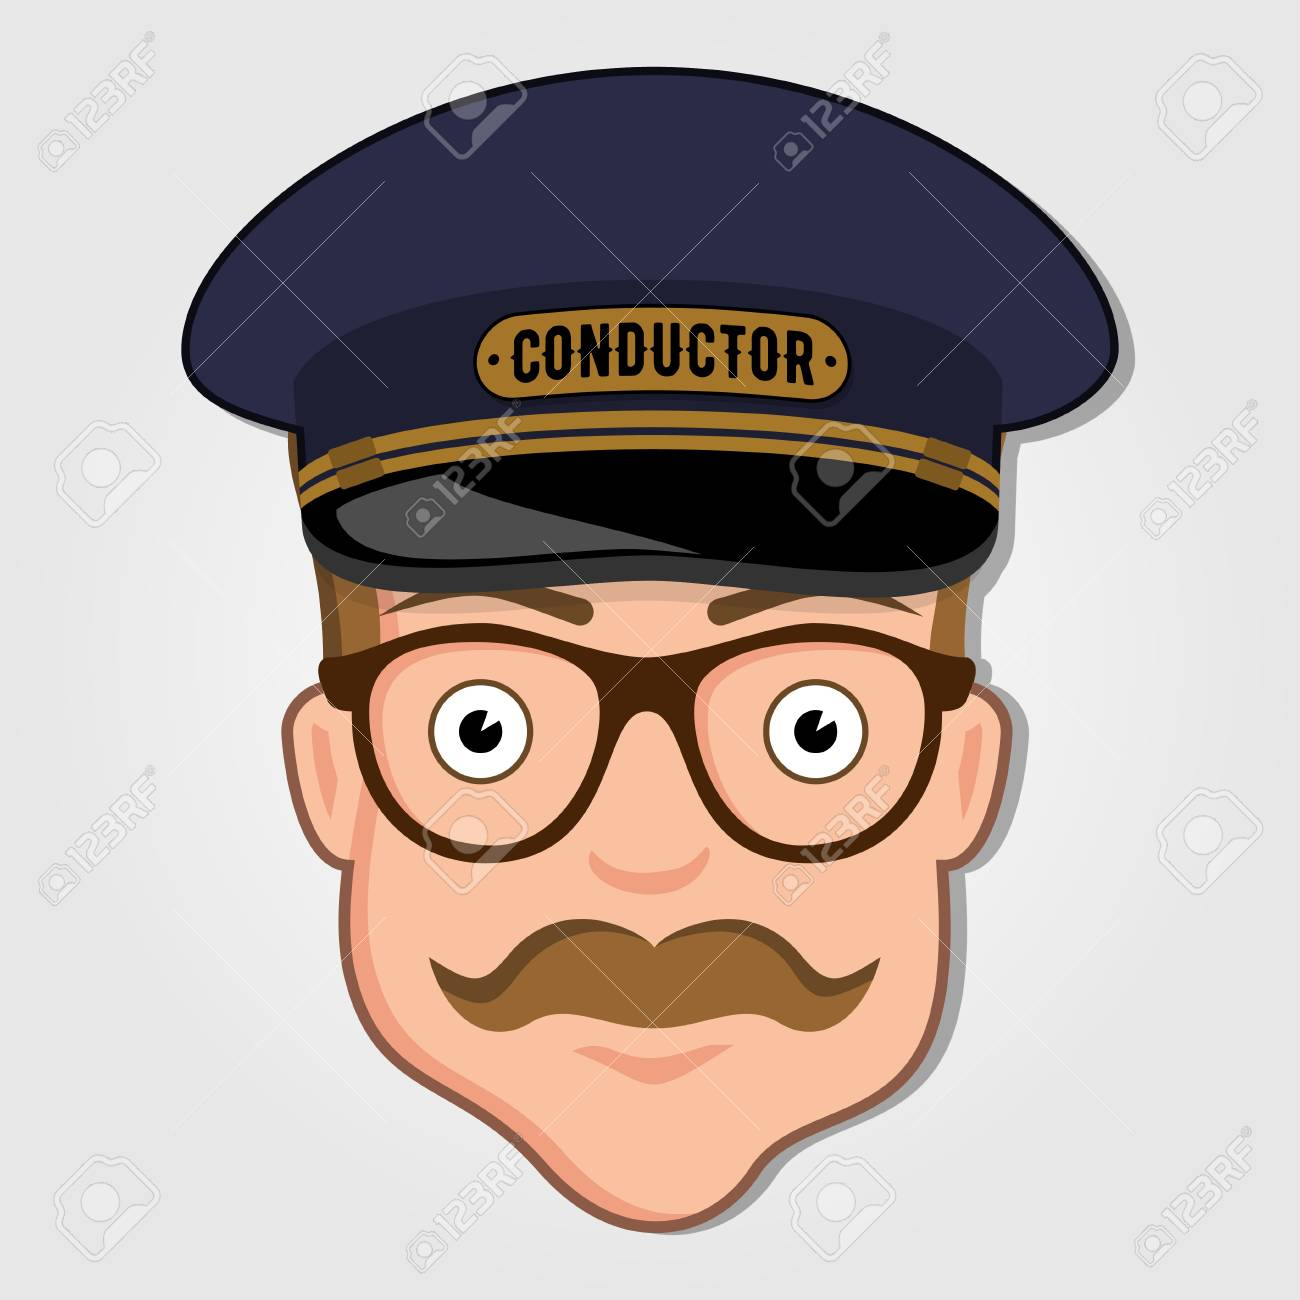 Train Conductor Cartoon Face with Glasses. Vector illustration. - 104271858